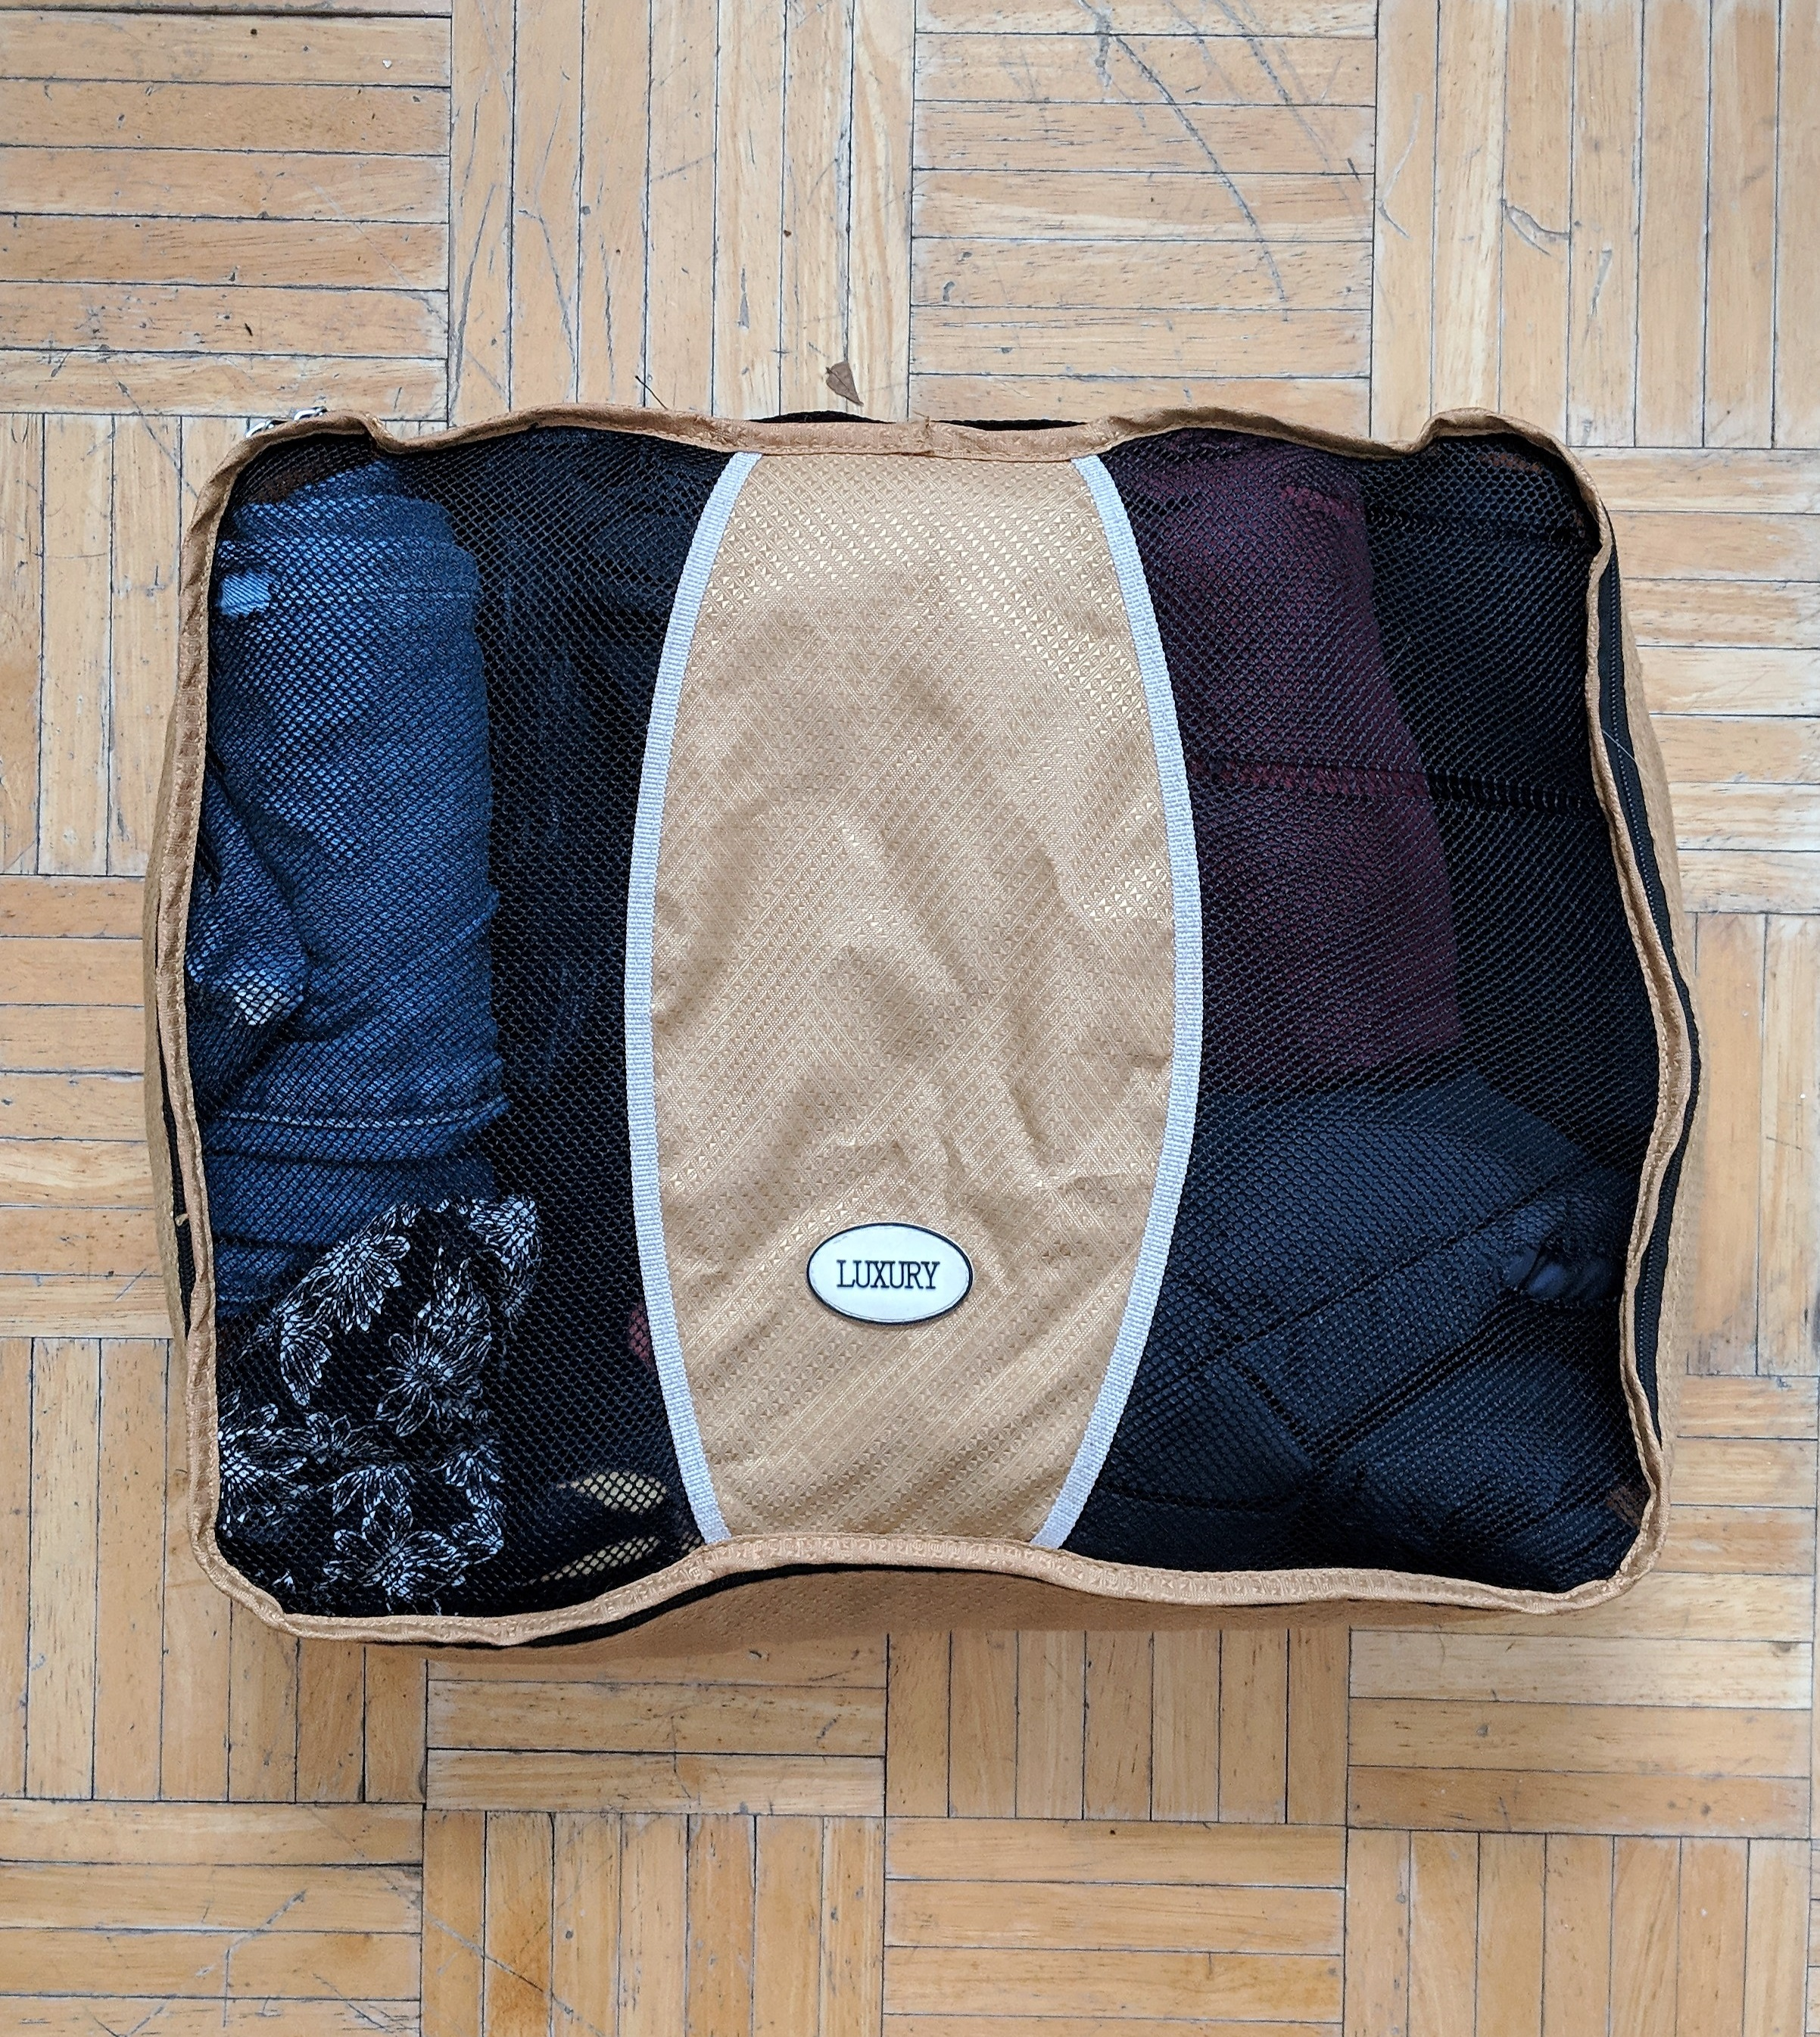 Great for organization. - Packing cubes keep your things organized within your pack, which is especially useful for longer trips. I have three packing cubes of different sizes. For this trip, I am only using the largest cube.